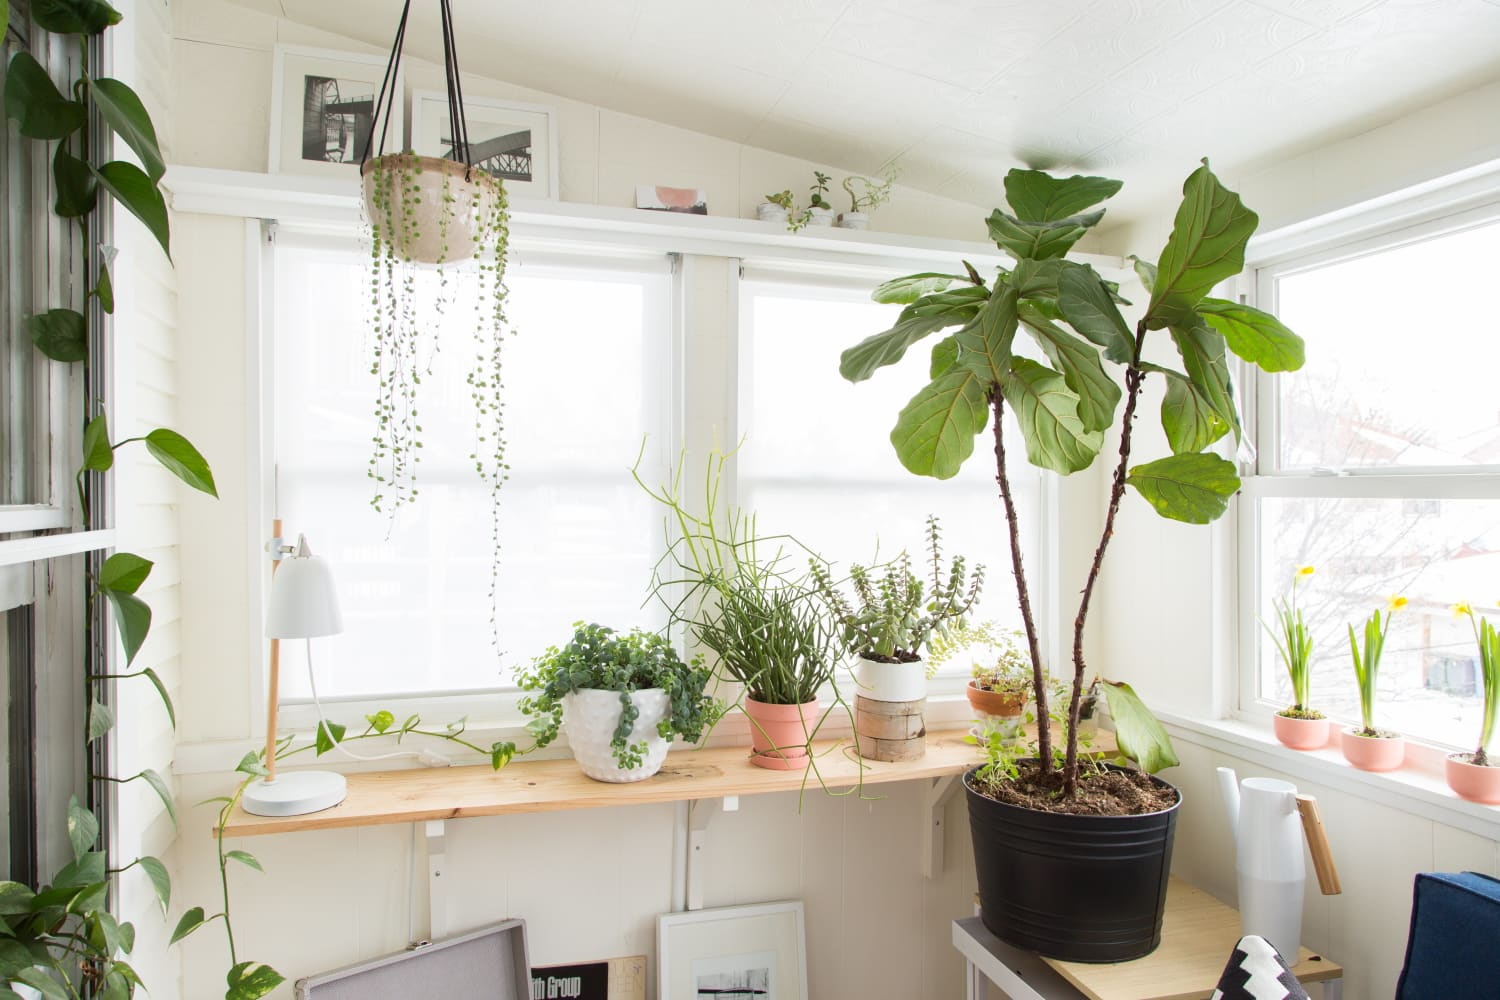 3 Questions Everyone Should Ask Themselves Before Becoming a Plant Parent